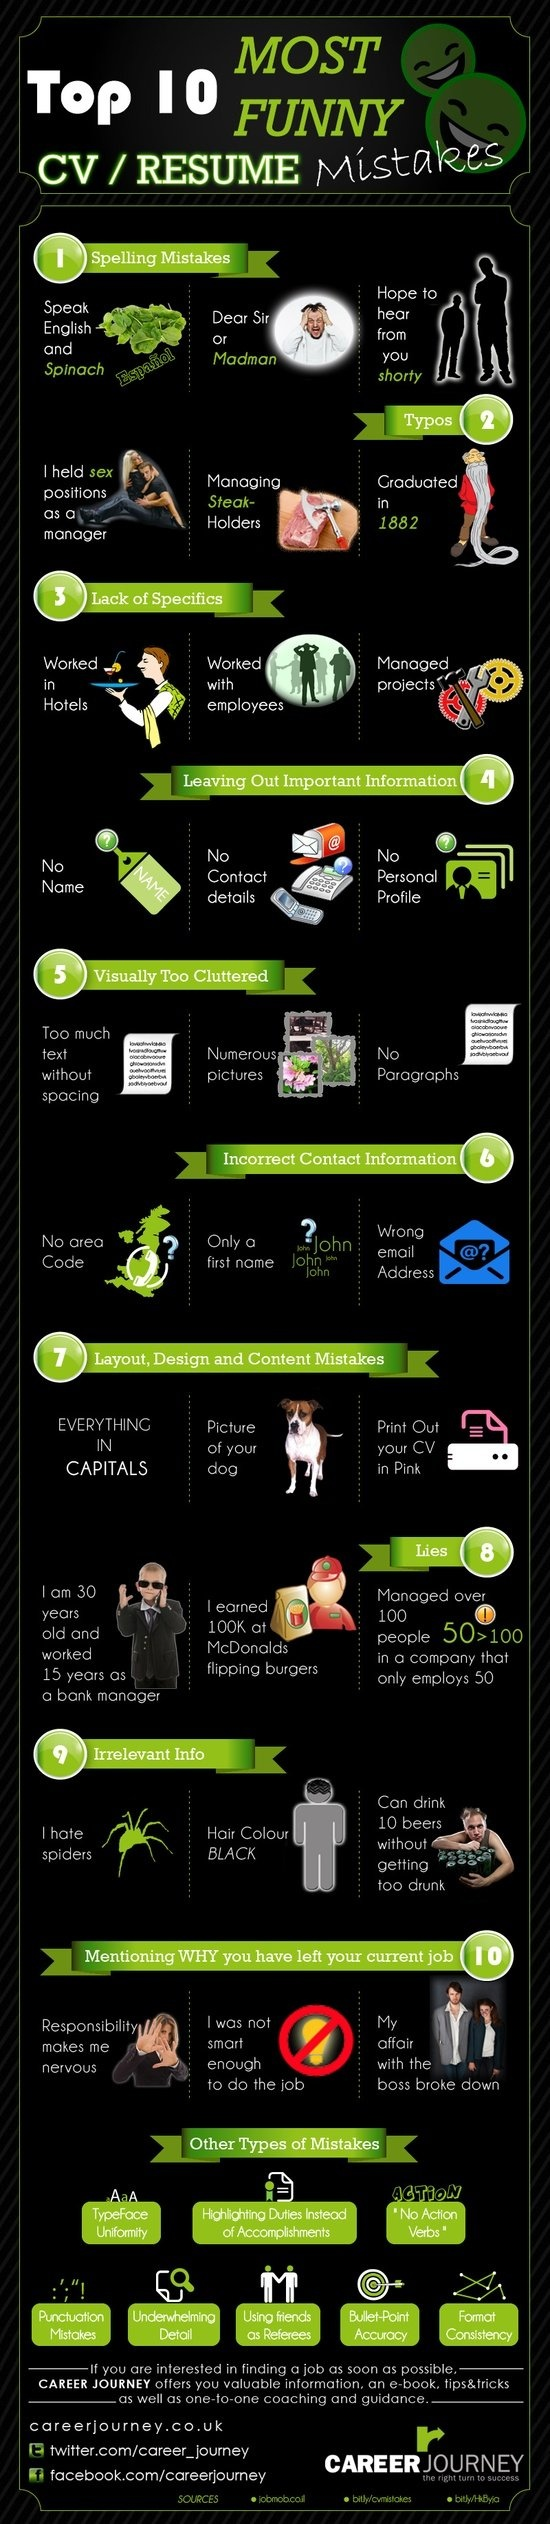 17 best images about resume tips and tricks resume 17 best images about resume tips and tricks resume tips creative resume and interview